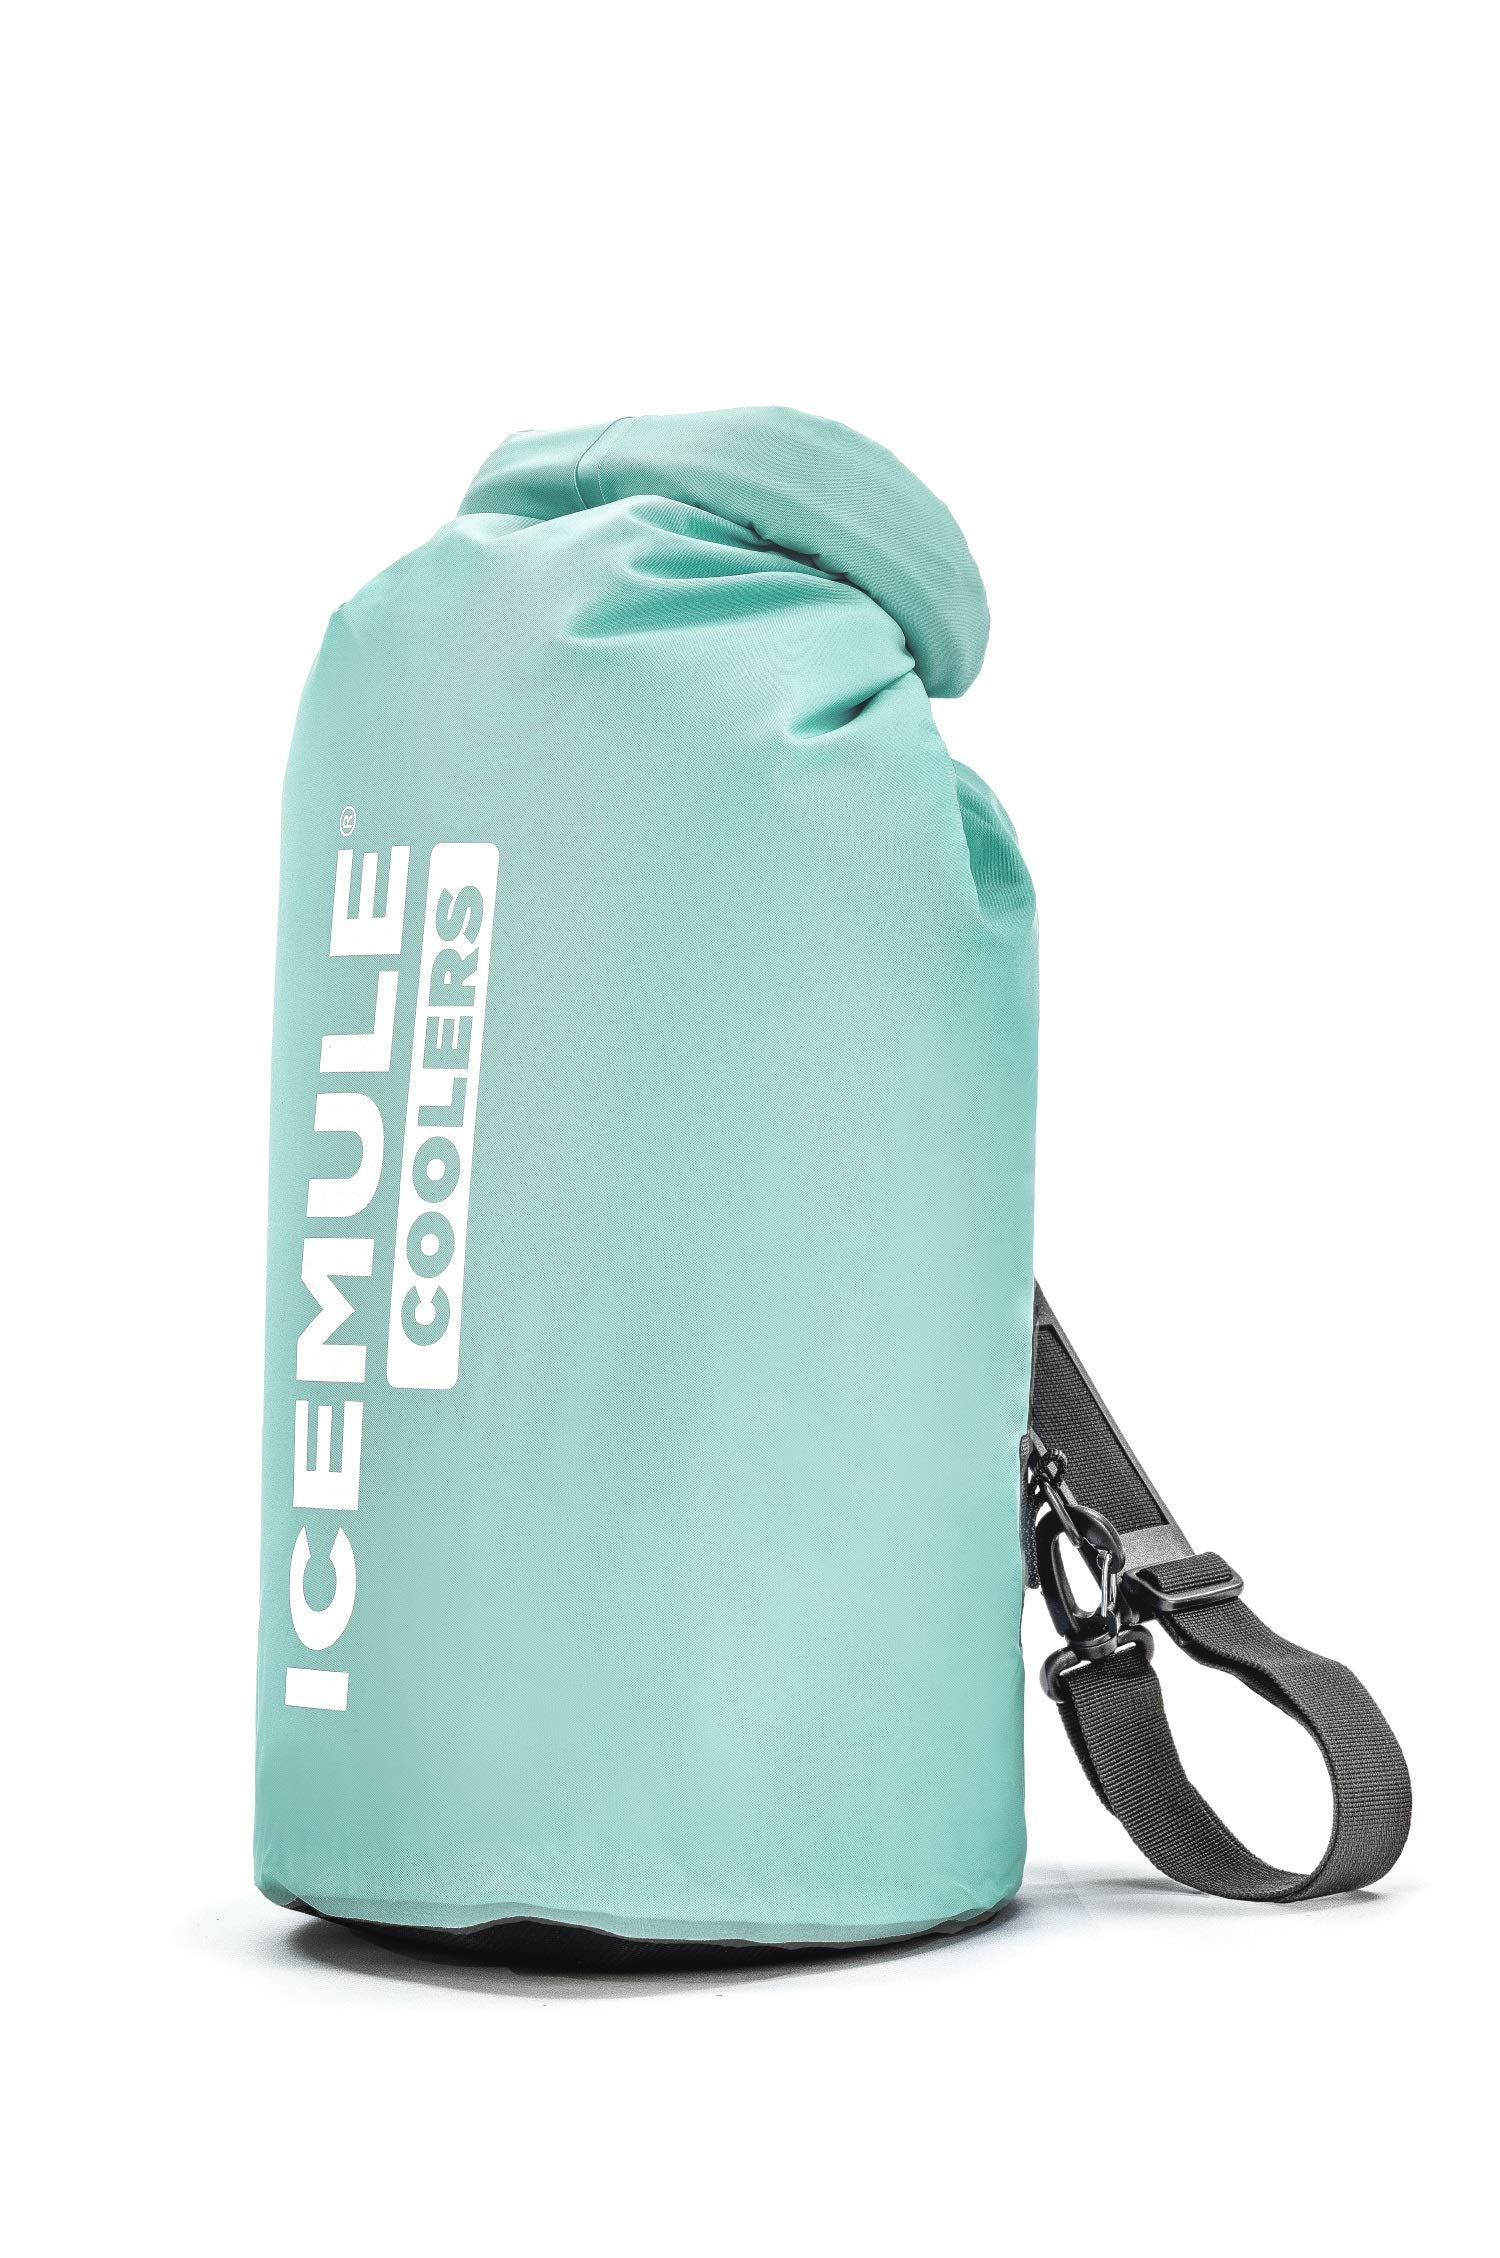 IceMule Classic Insulated Backpack Cooler Bag - Hands-Free, Collapsible, and Waterproof, This Portable Cooler is an Ideal Sling Backpack for Hiking, The Beach, Picnics and Camping-Large, Seafoam by IceMule